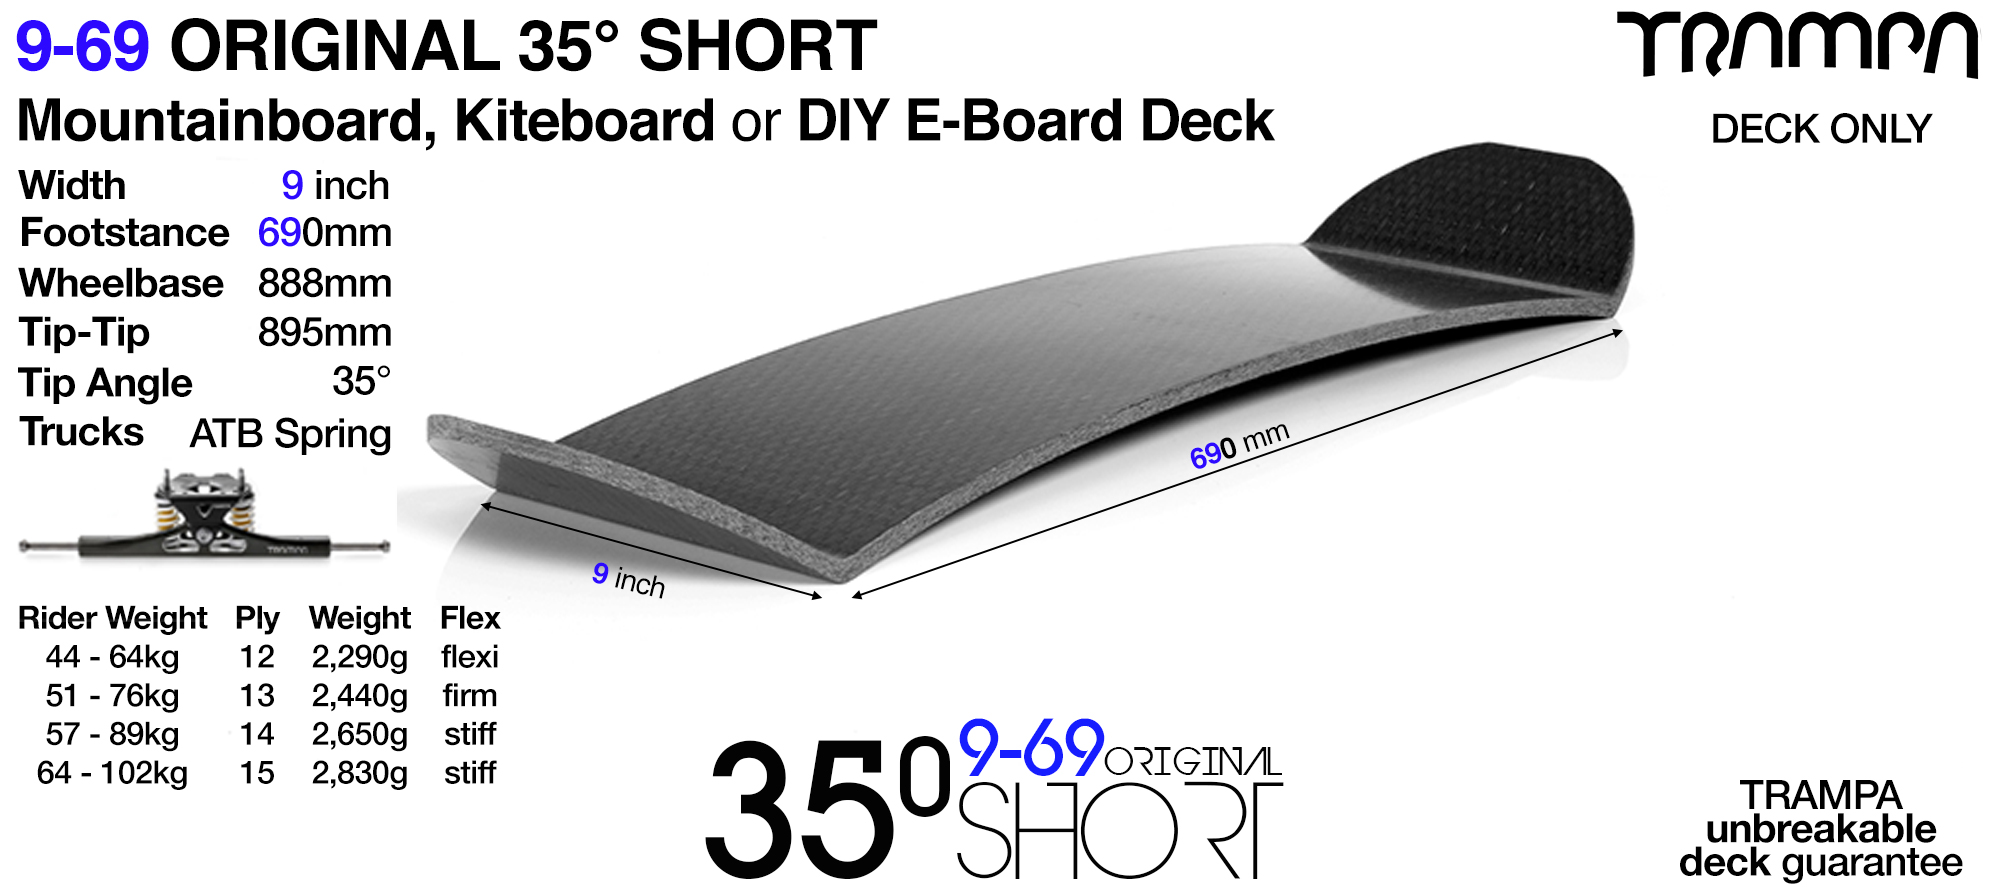 35° SHORT Original 9-69 TRAMPA Mountainboard or Kiteboard Deck